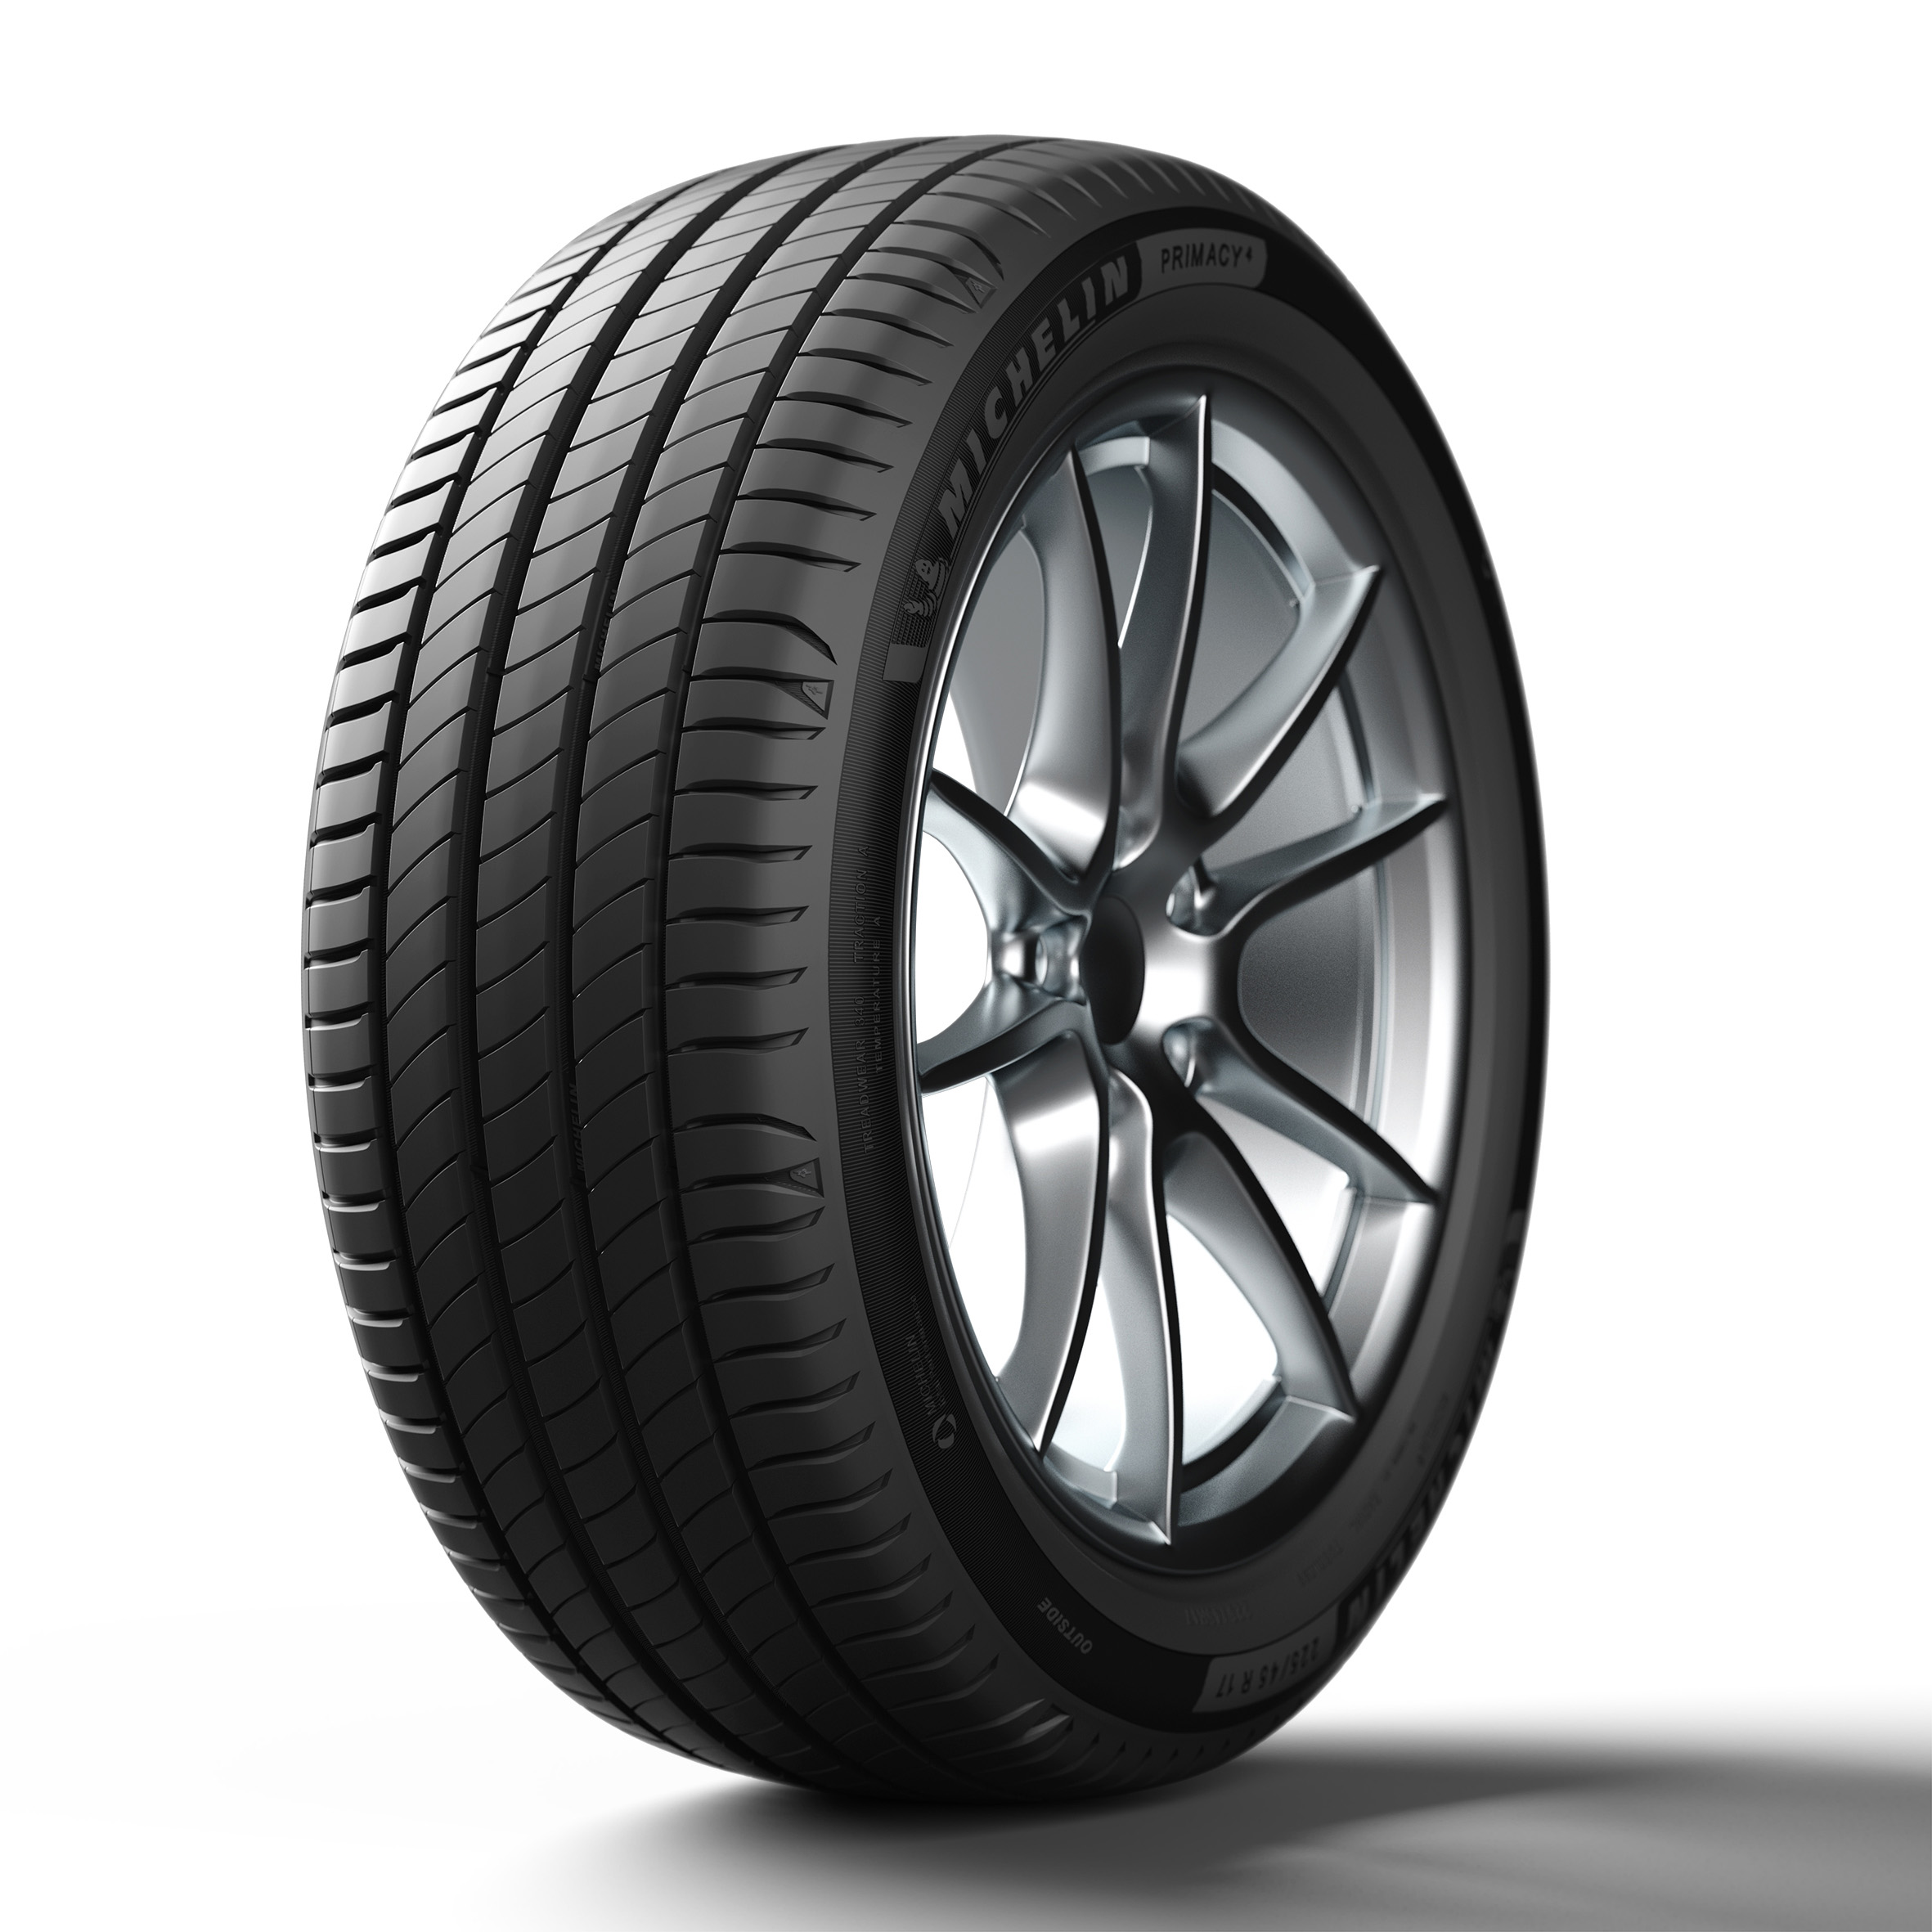 Anvelopa Vara Michelin Primacy 4 205/45R16 83W